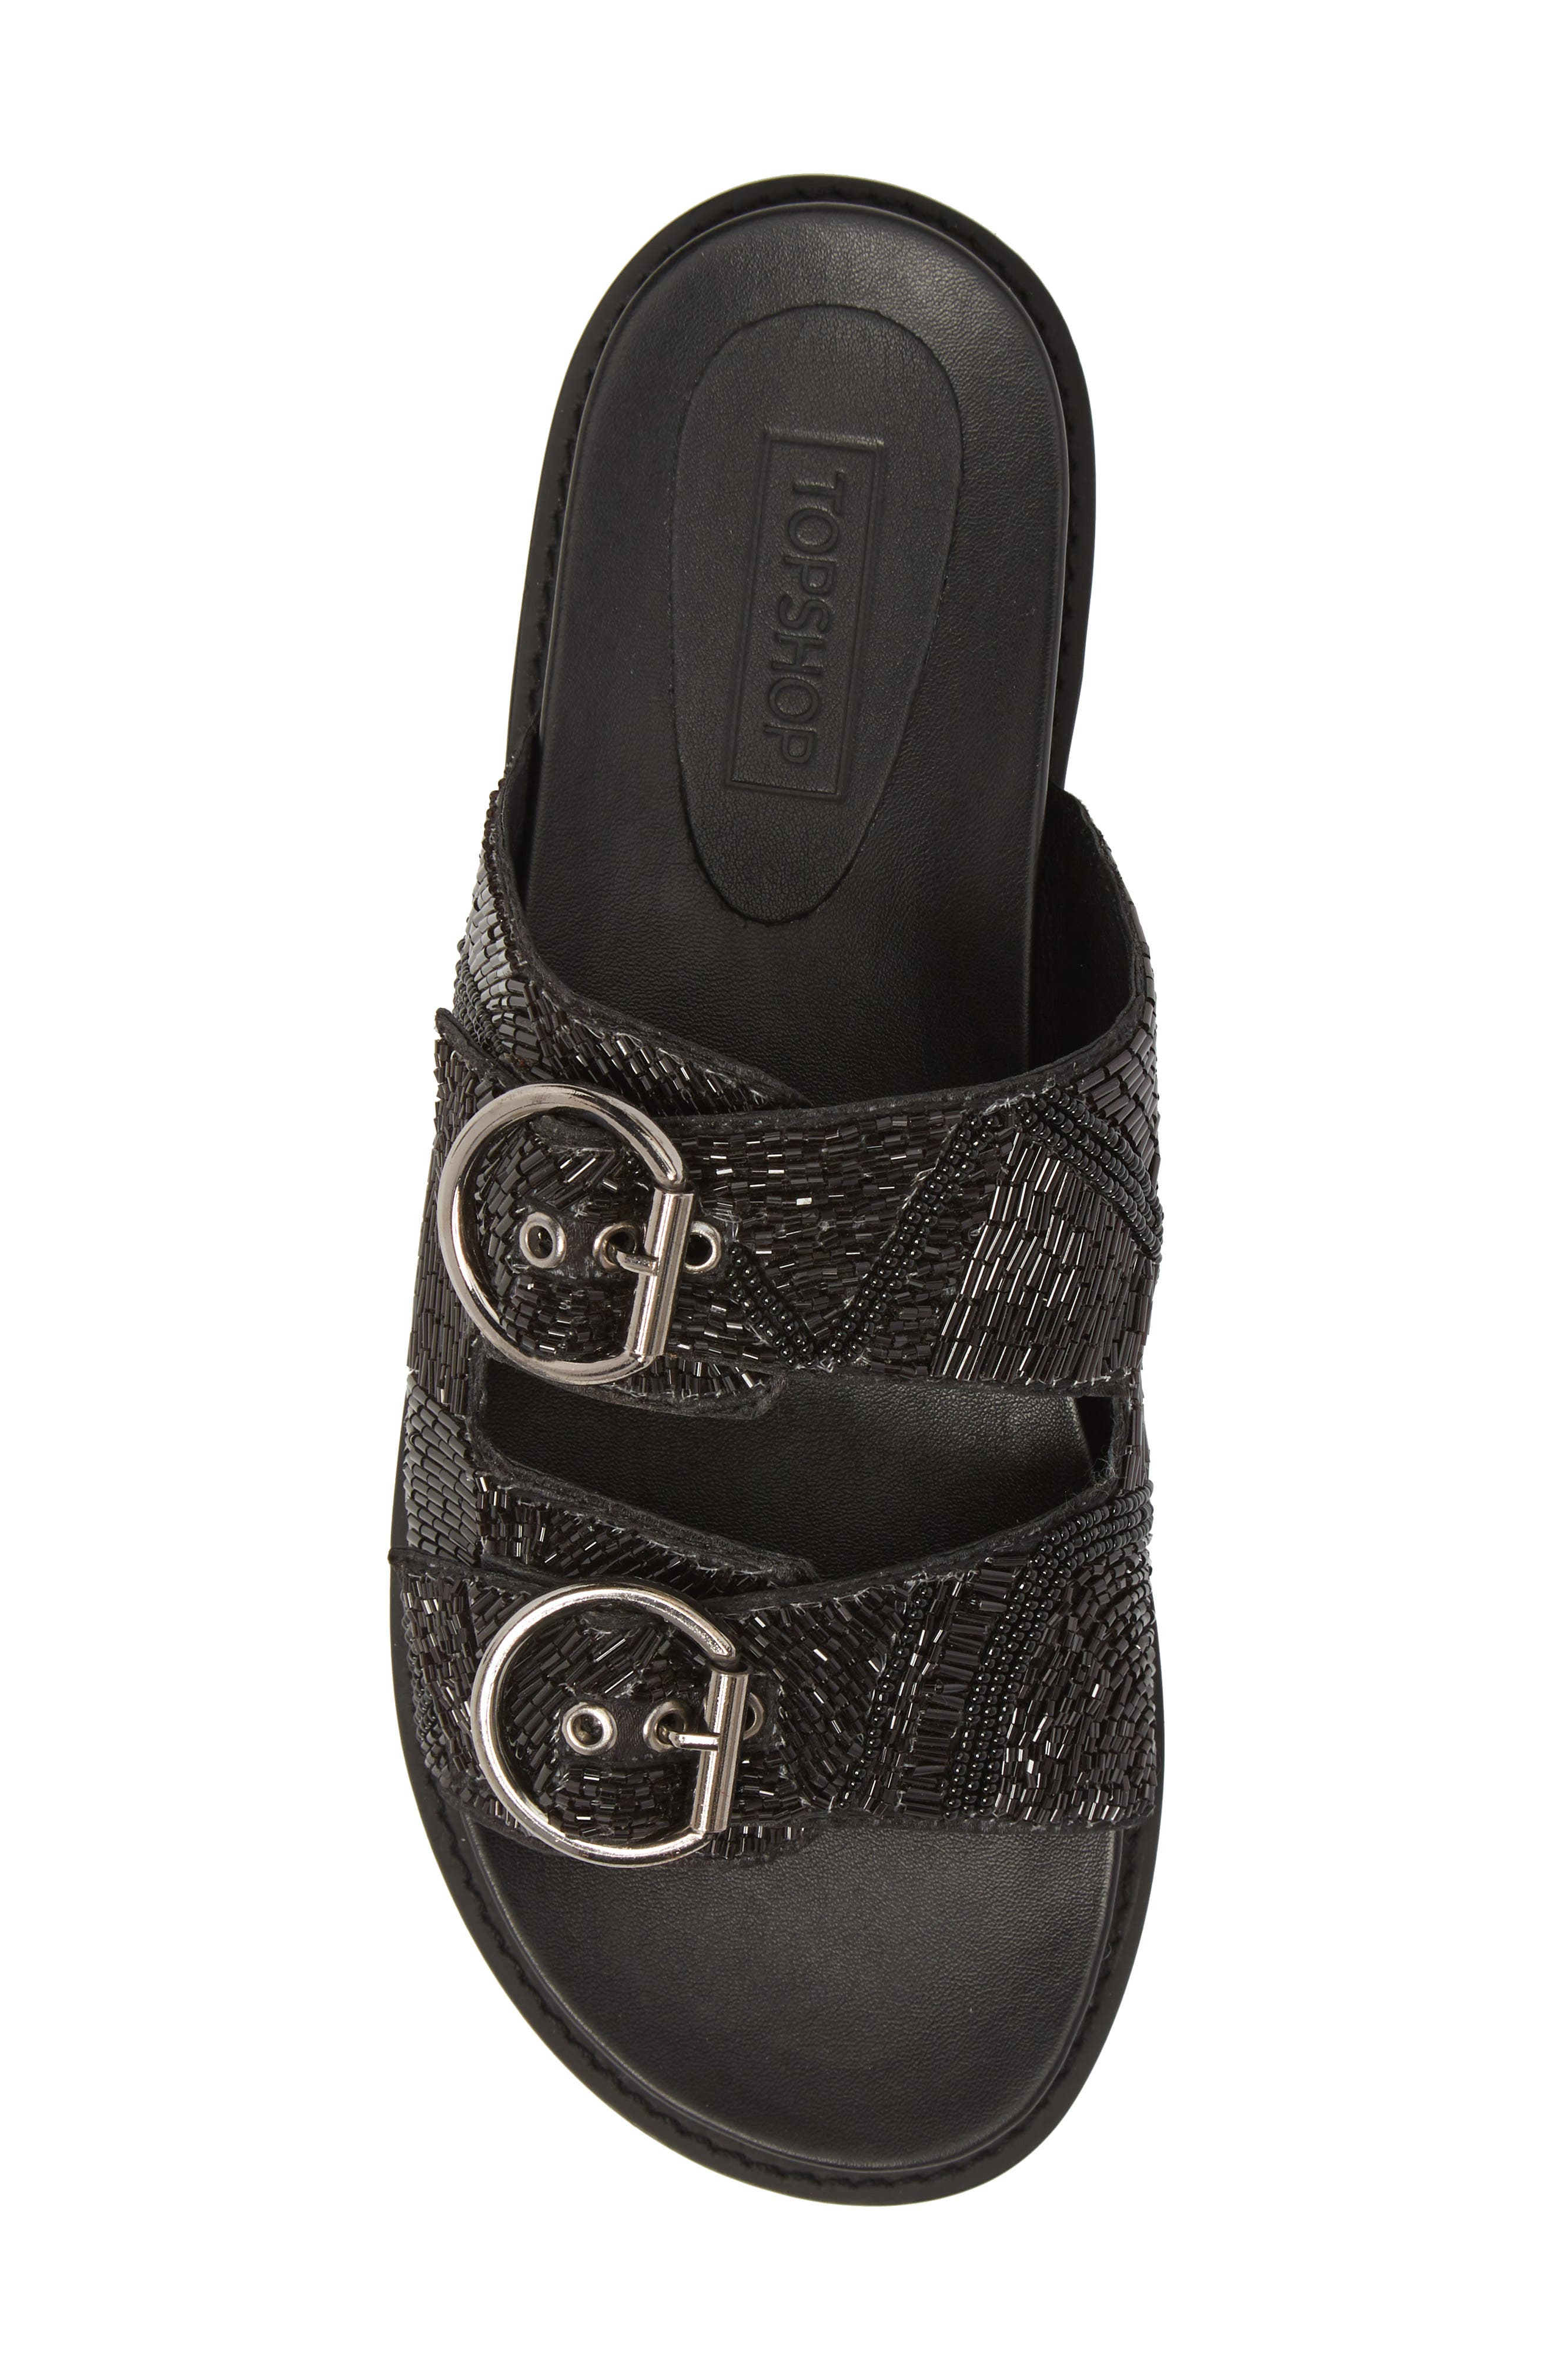 Frankie Embellished Slide Sandal,                             Alternate thumbnail 5, color,                             001